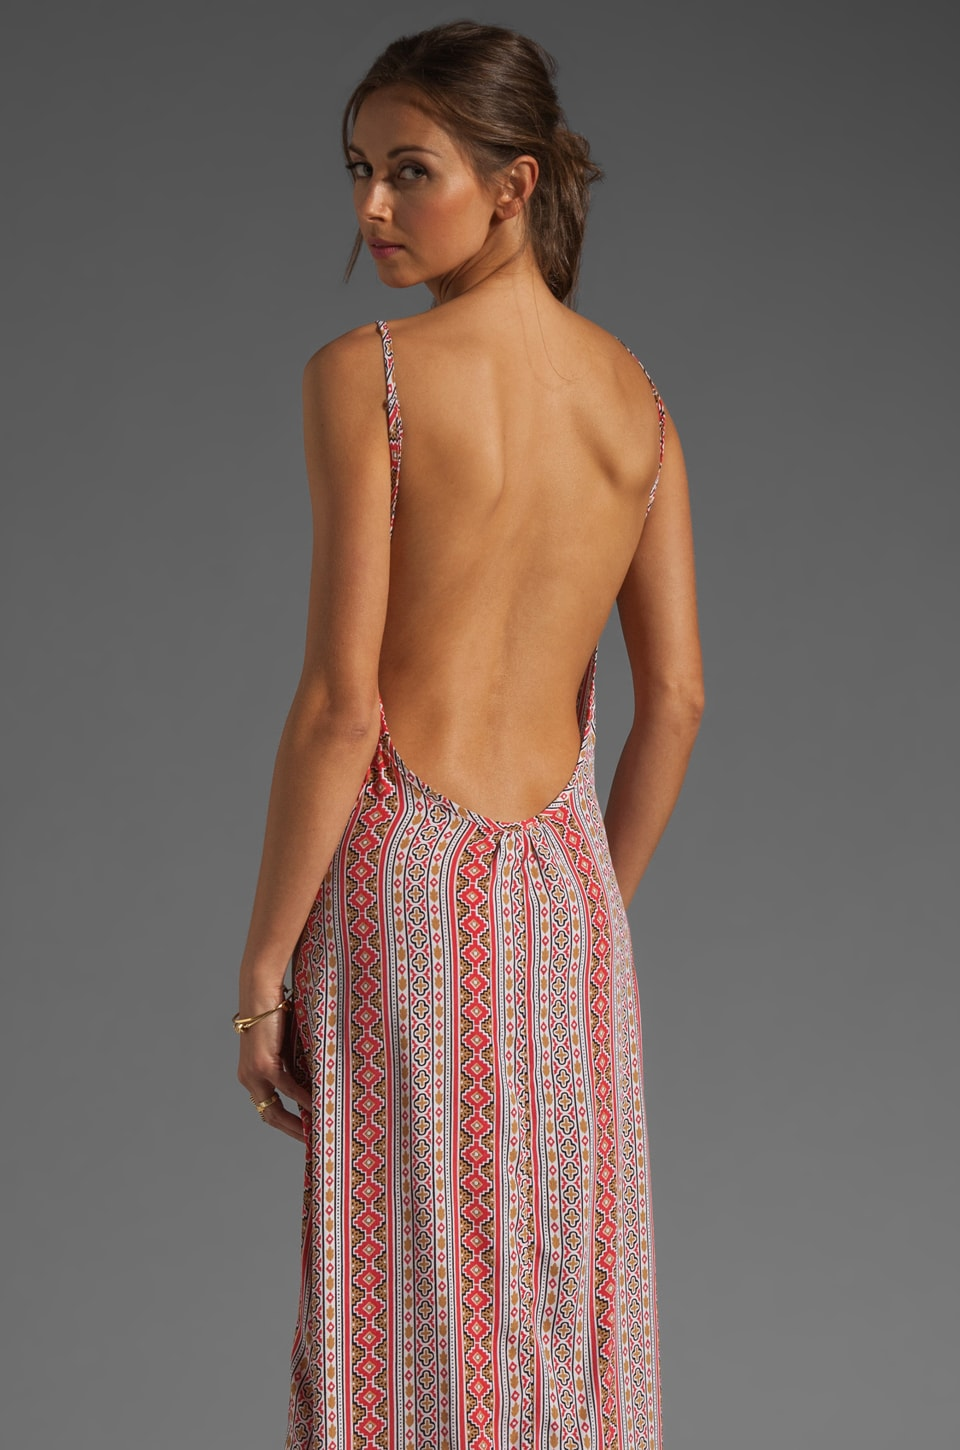 FLYNN SKYE Scoop Back Maxi Dress in Coral Gypsy